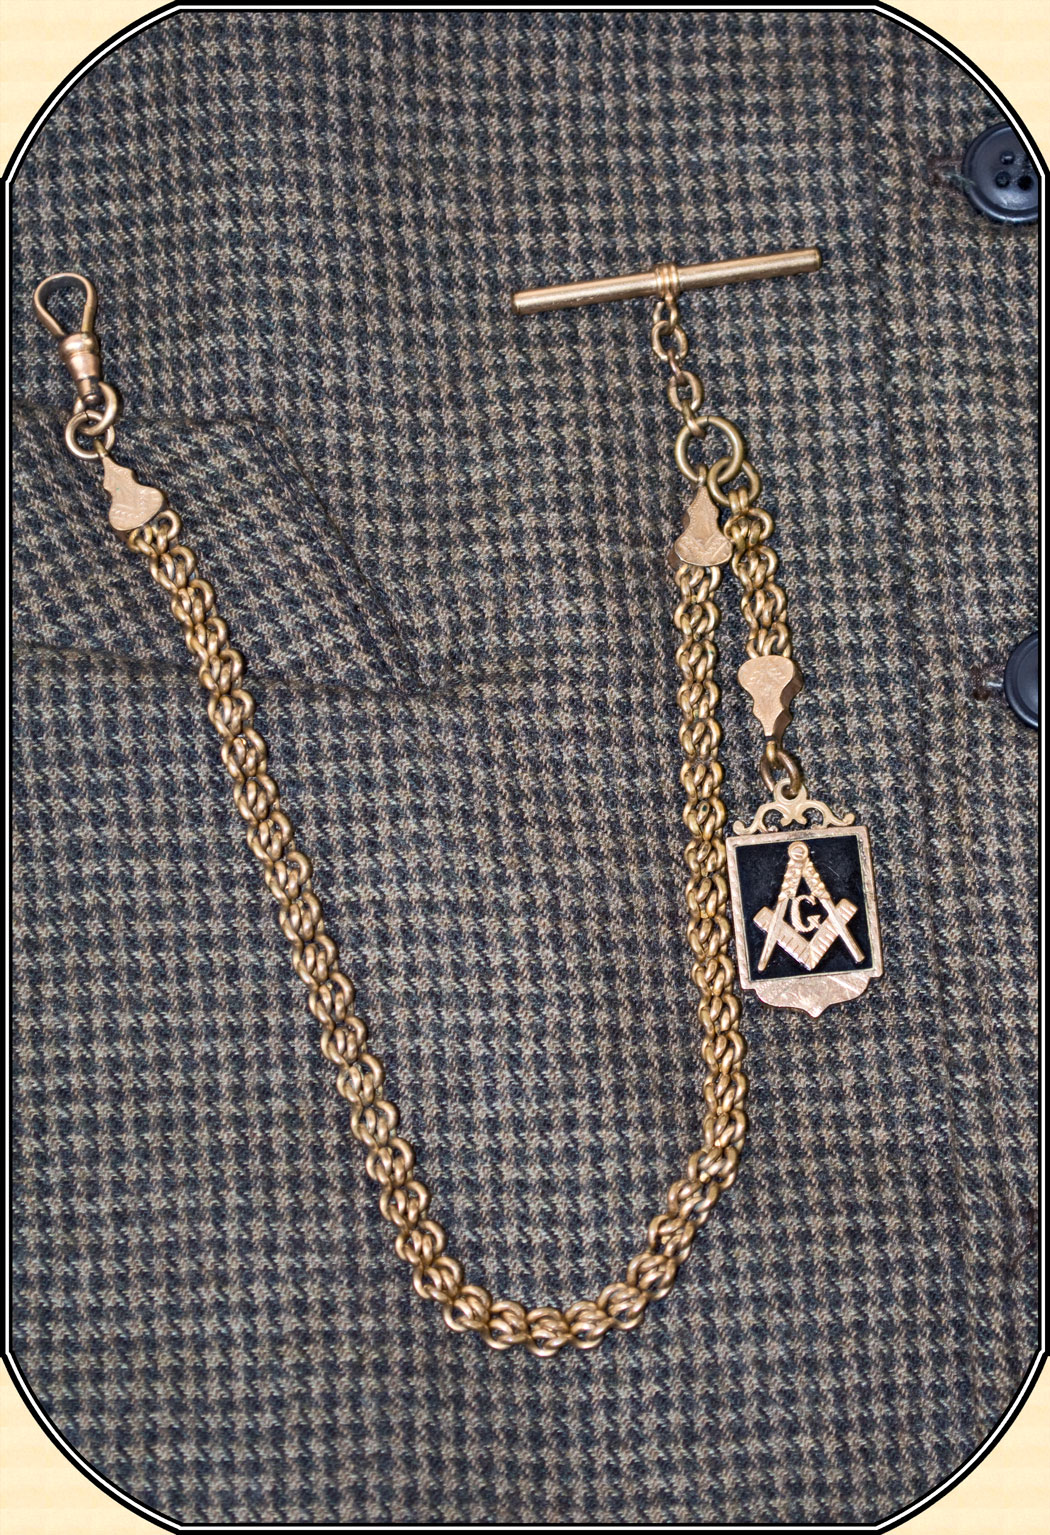 Z Sold Antique Gold Filled Victorian Watch Chain With